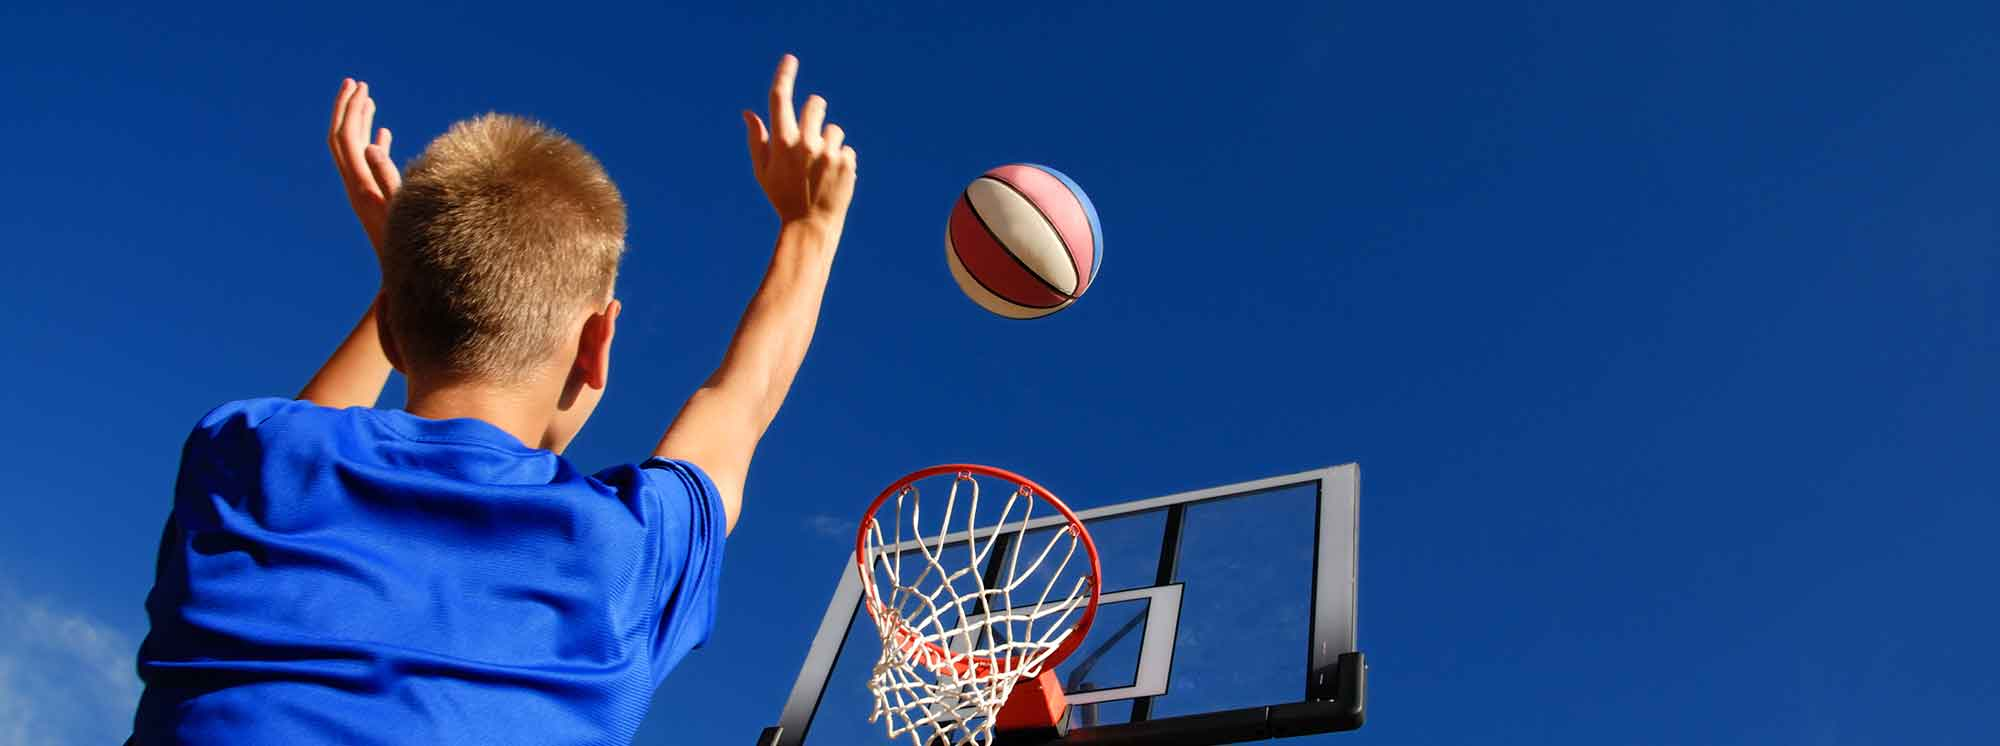 Best Basketball Camps in Florida